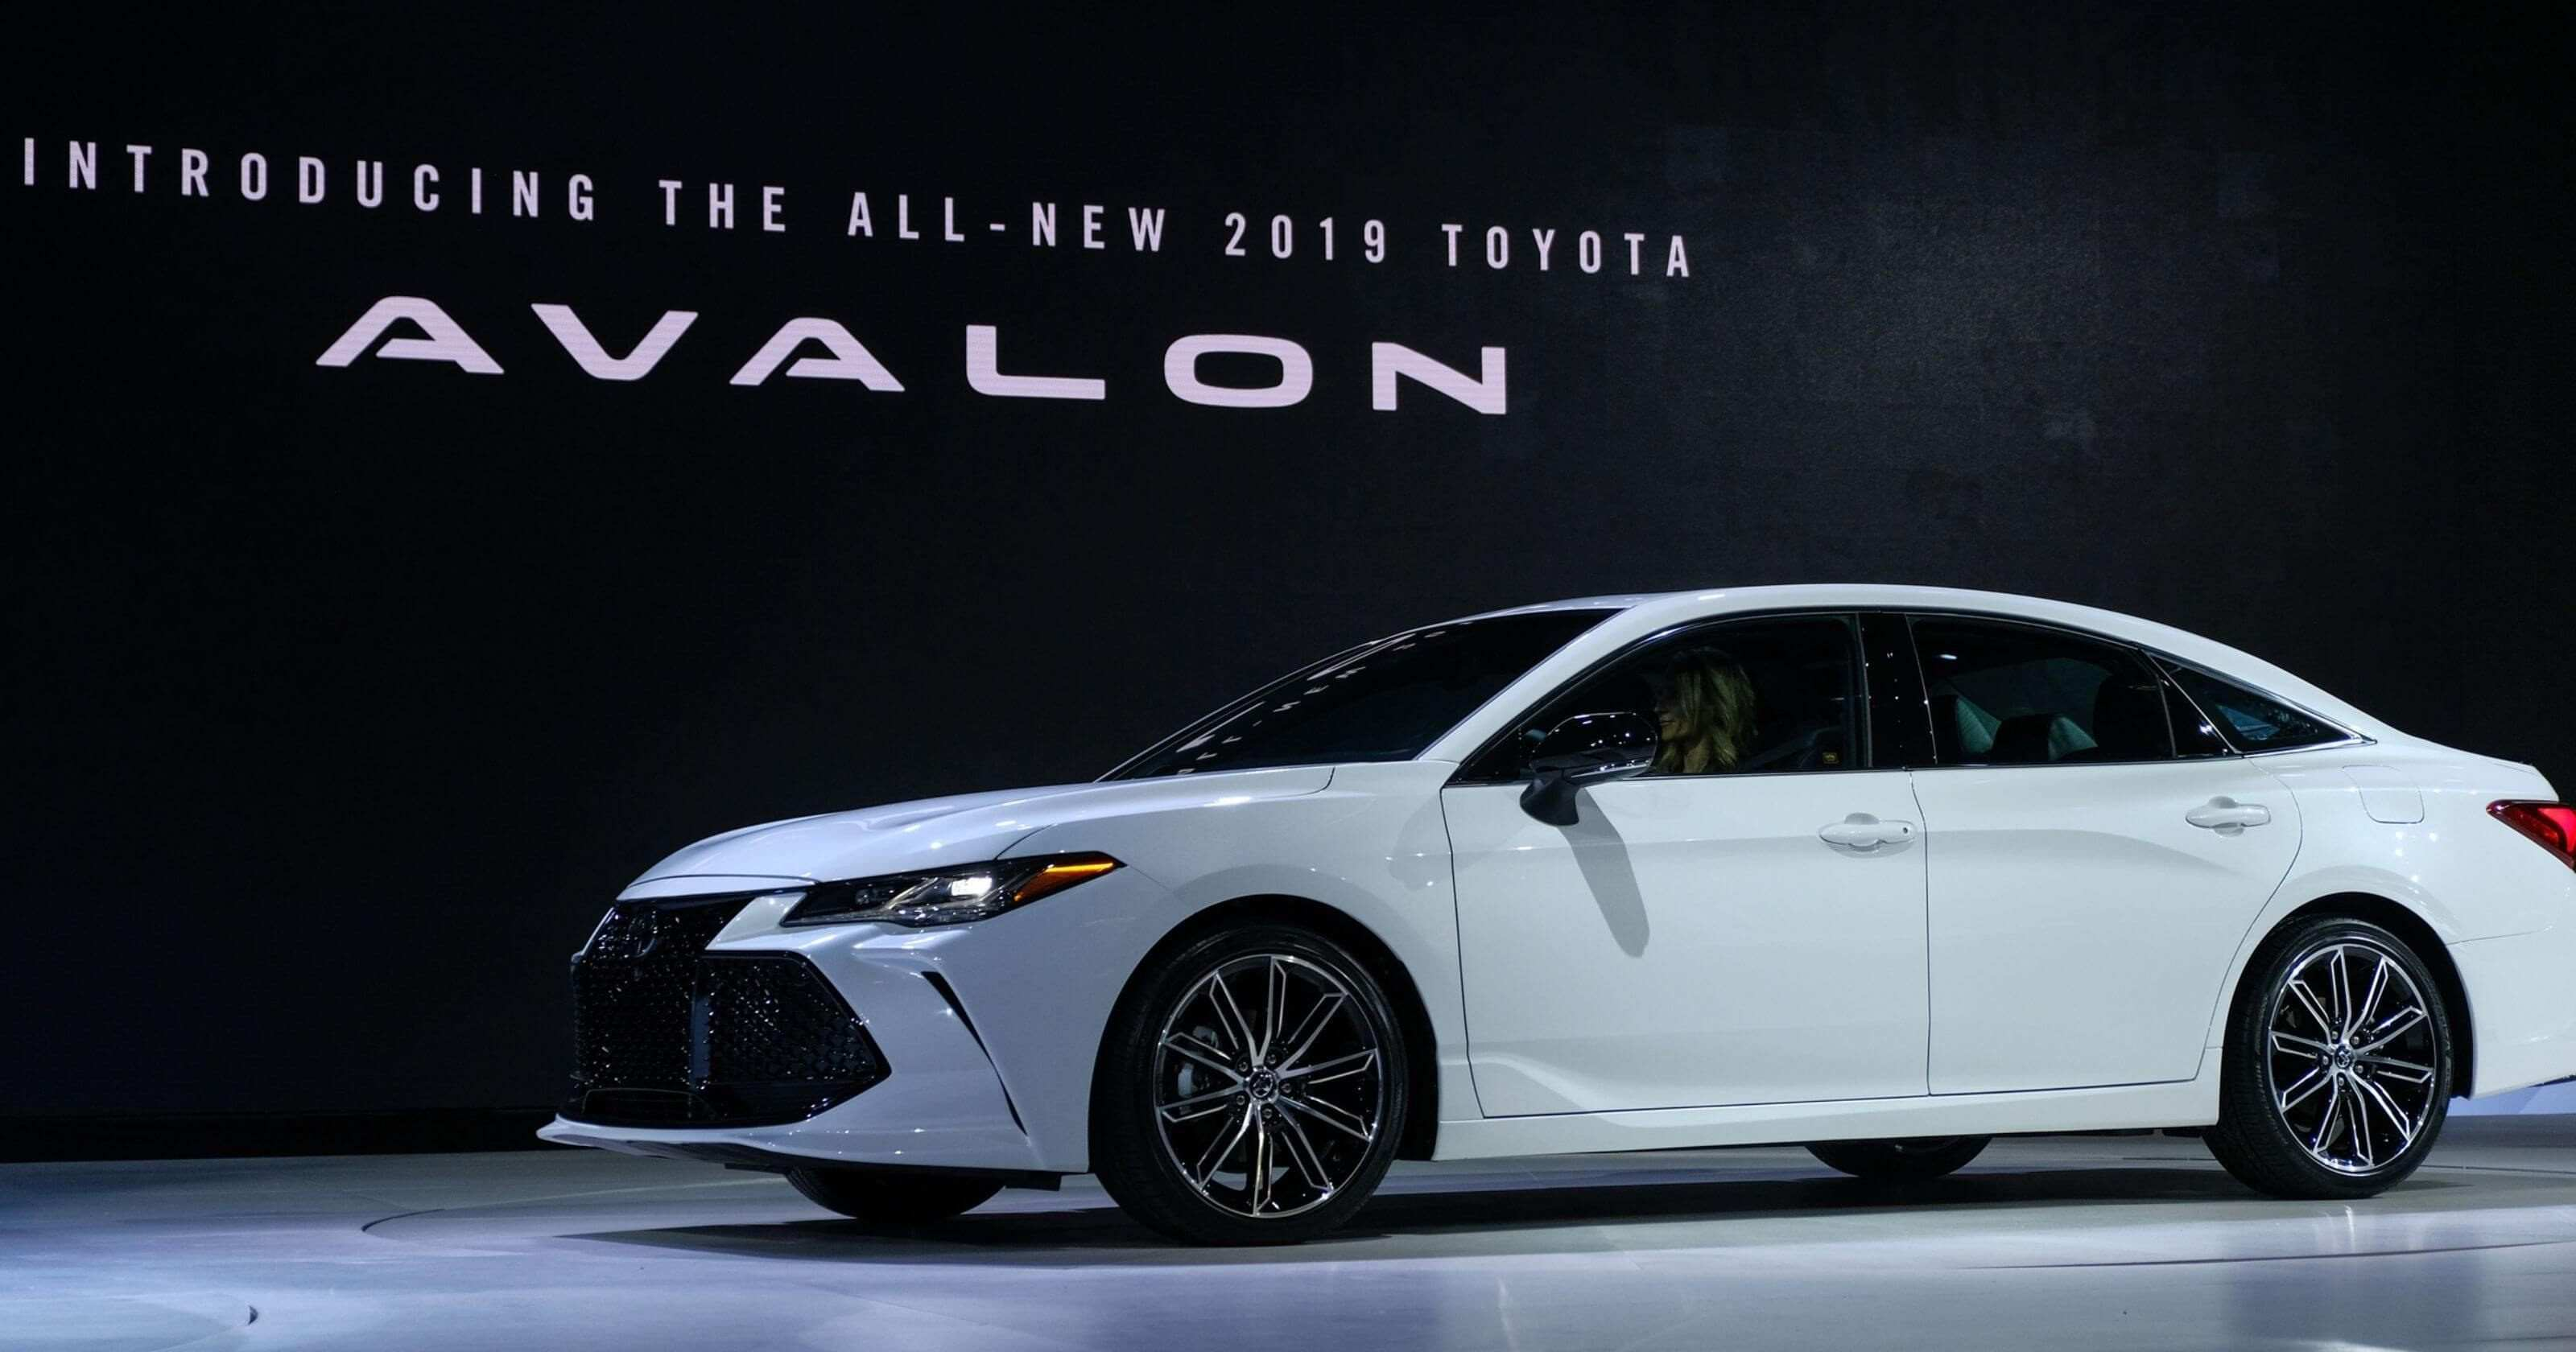 70 Best Review Avalon Toyota 2020 New Concept Exterior by Avalon Toyota 2020 New Concept